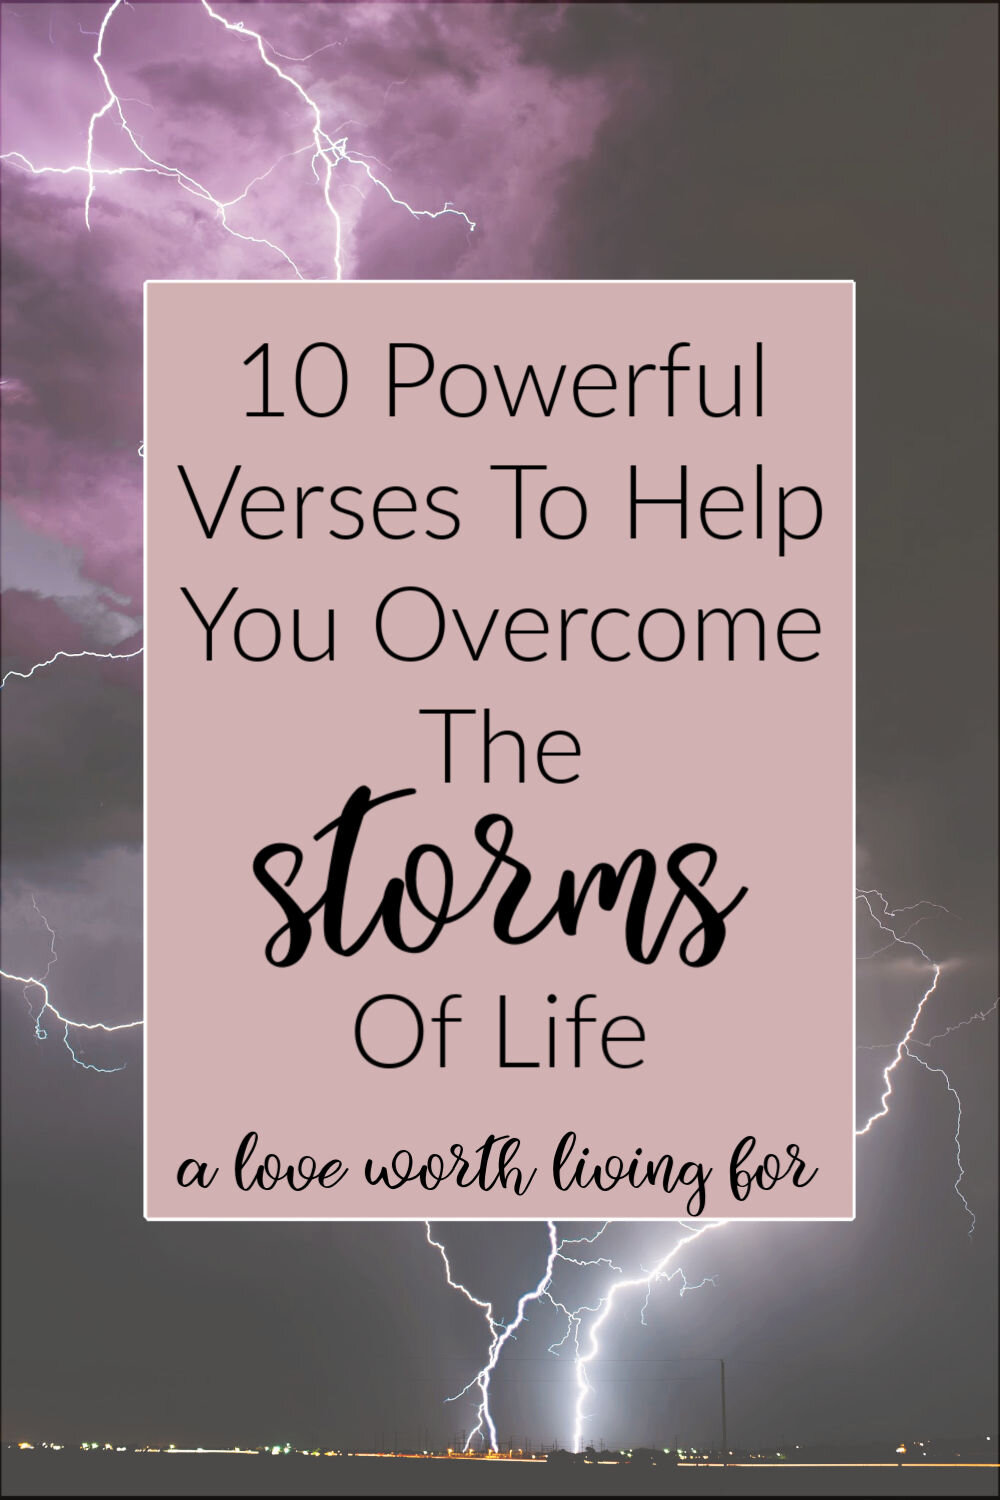 Sometimes life is hard. Where do you turn when the storms of life begin to rage around you? The good news is there is help and hope in life toughest seasons. The Bible is full of verses for when life is hard and stormy. You can have peace in the midsts of crisis and stress.